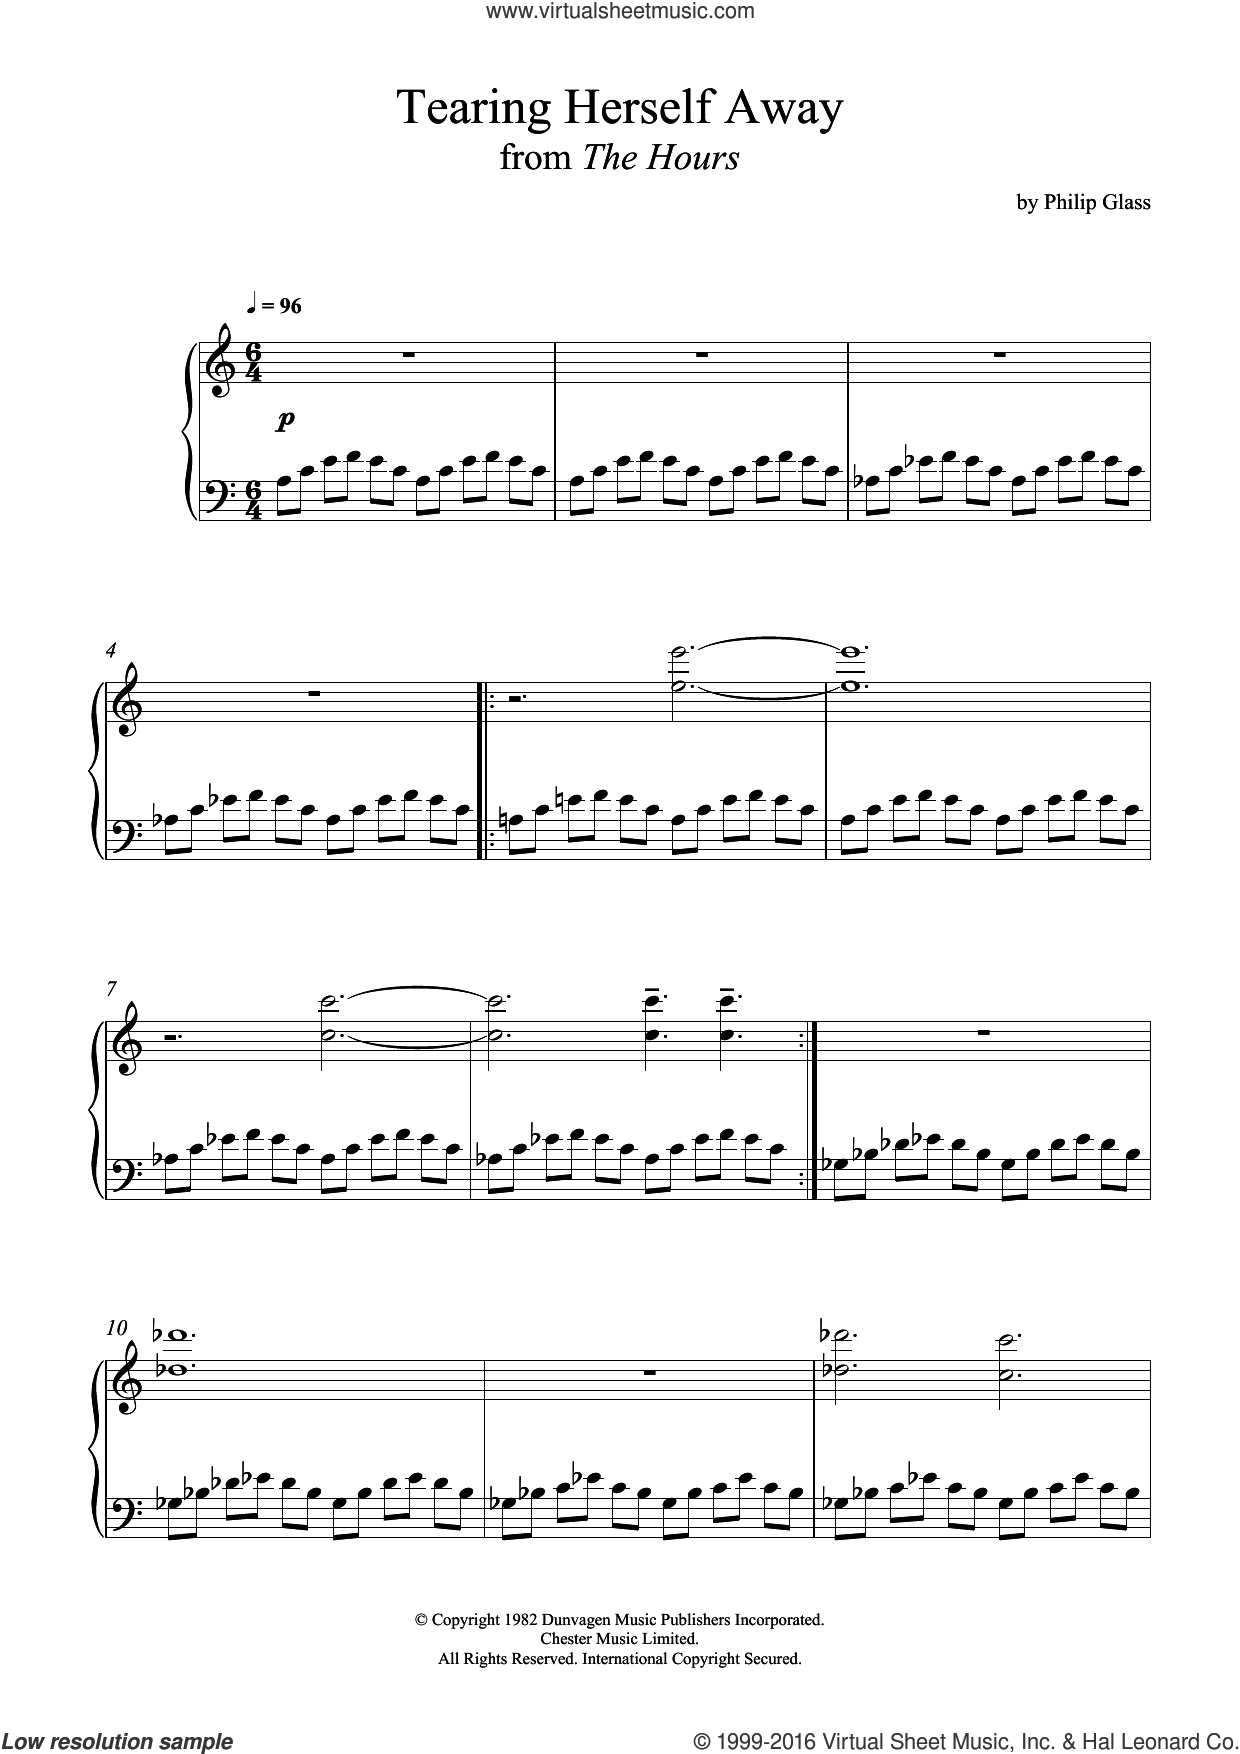 Tearing Herself Away (from 'The Hours') sheet music for piano solo by Philip Glass. Score Image Preview.